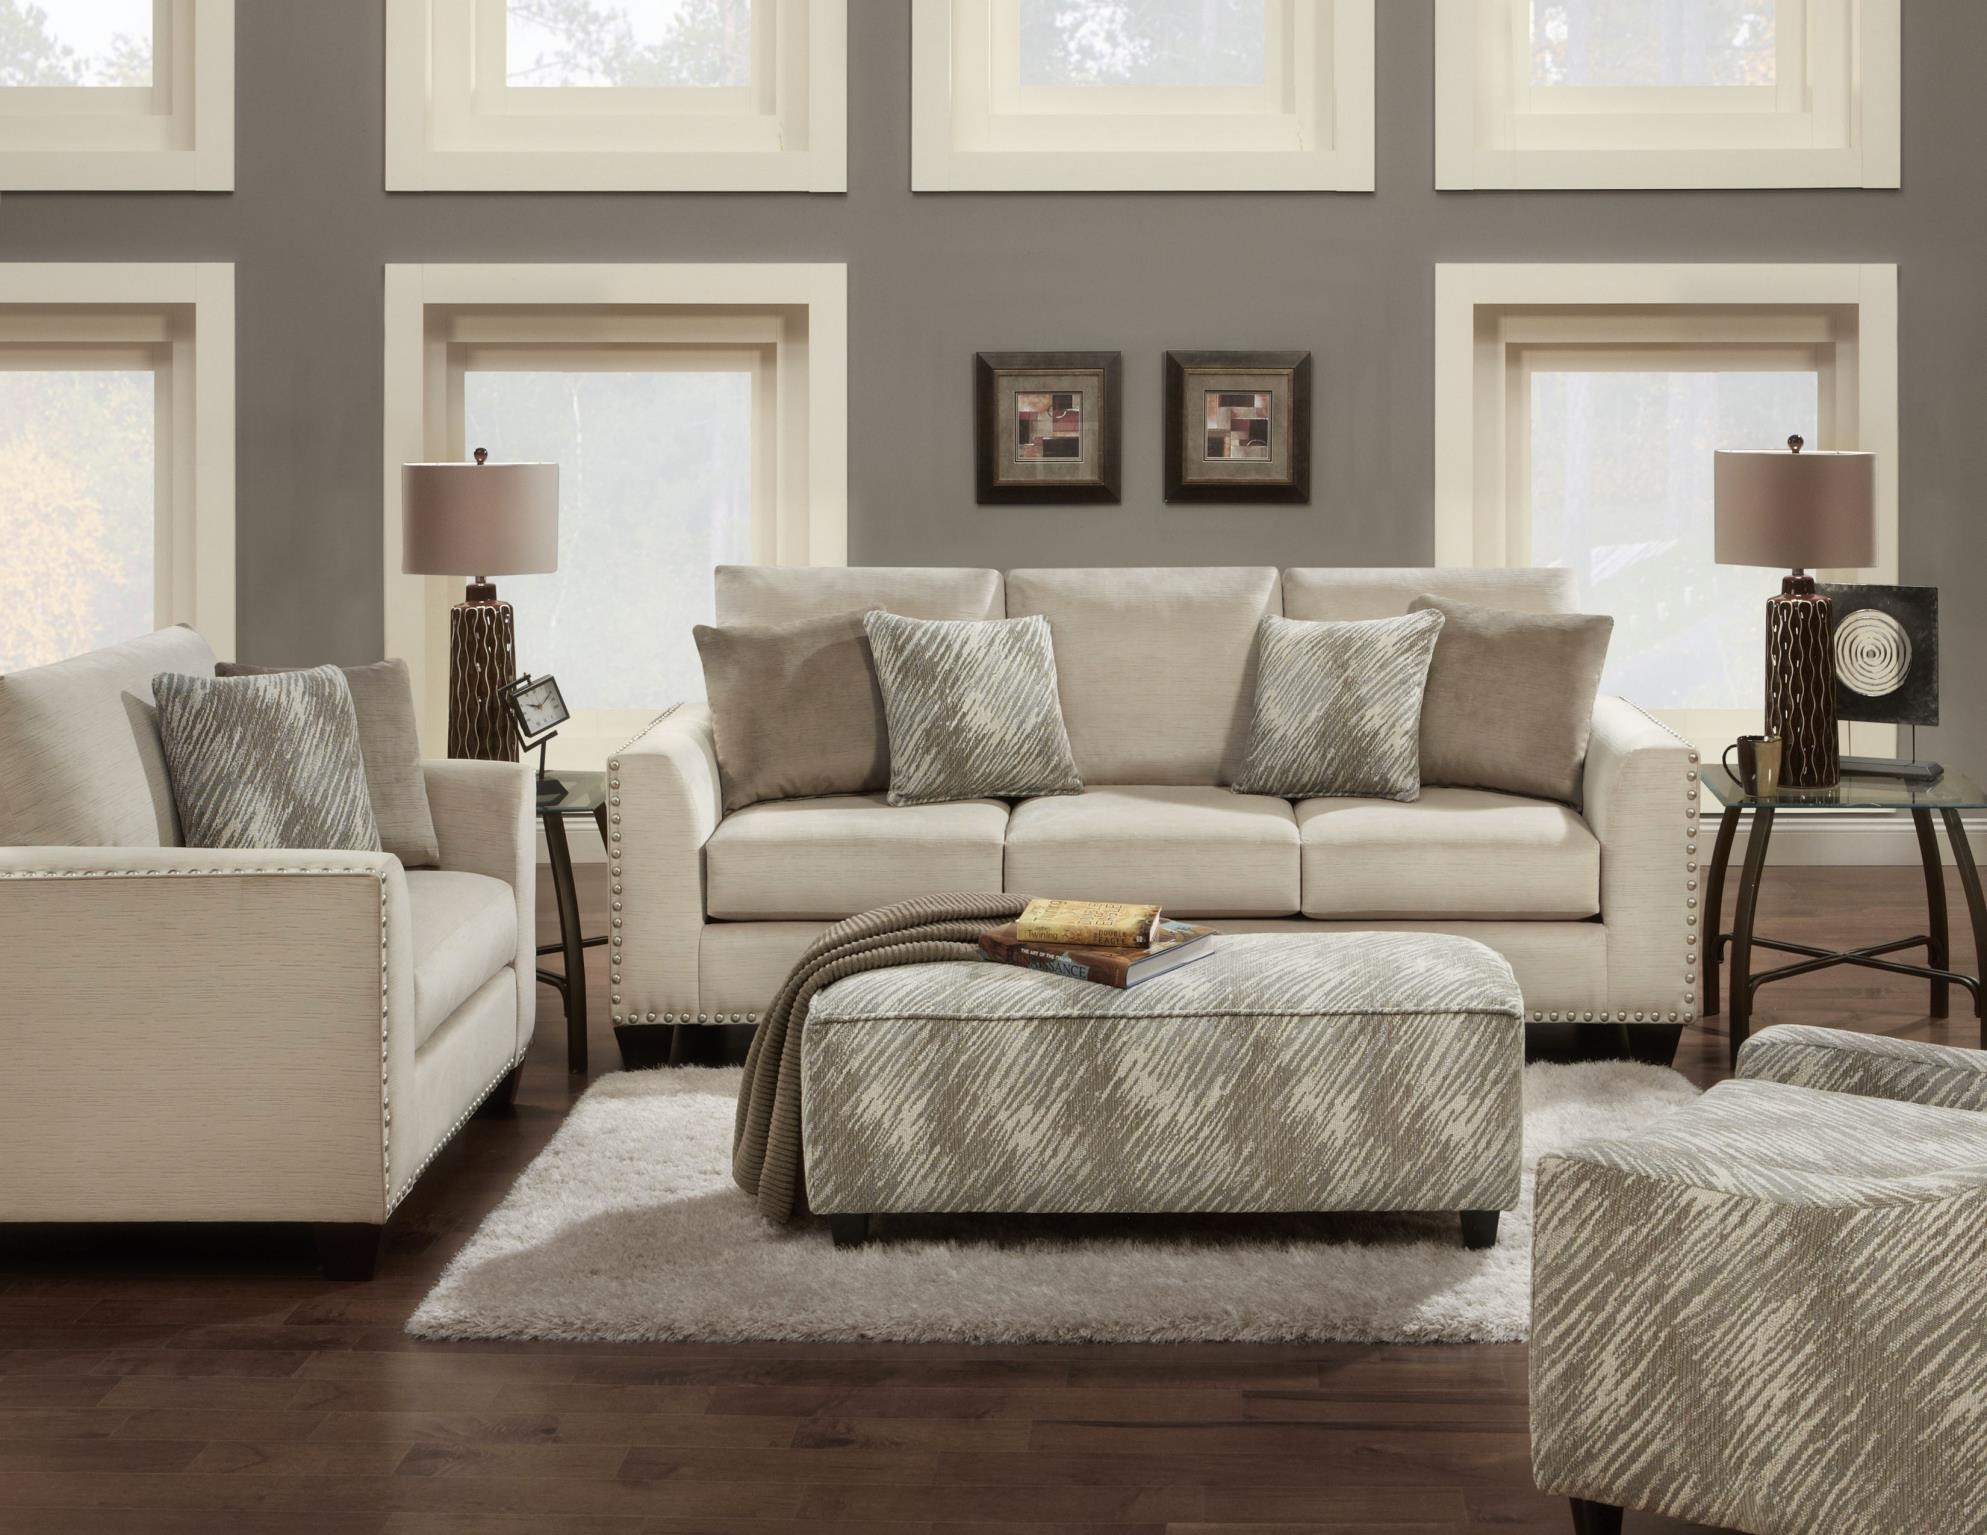 Fusion Living Room Chair And A 1/2 1462Empire Stone At B.F. Myers Furniture